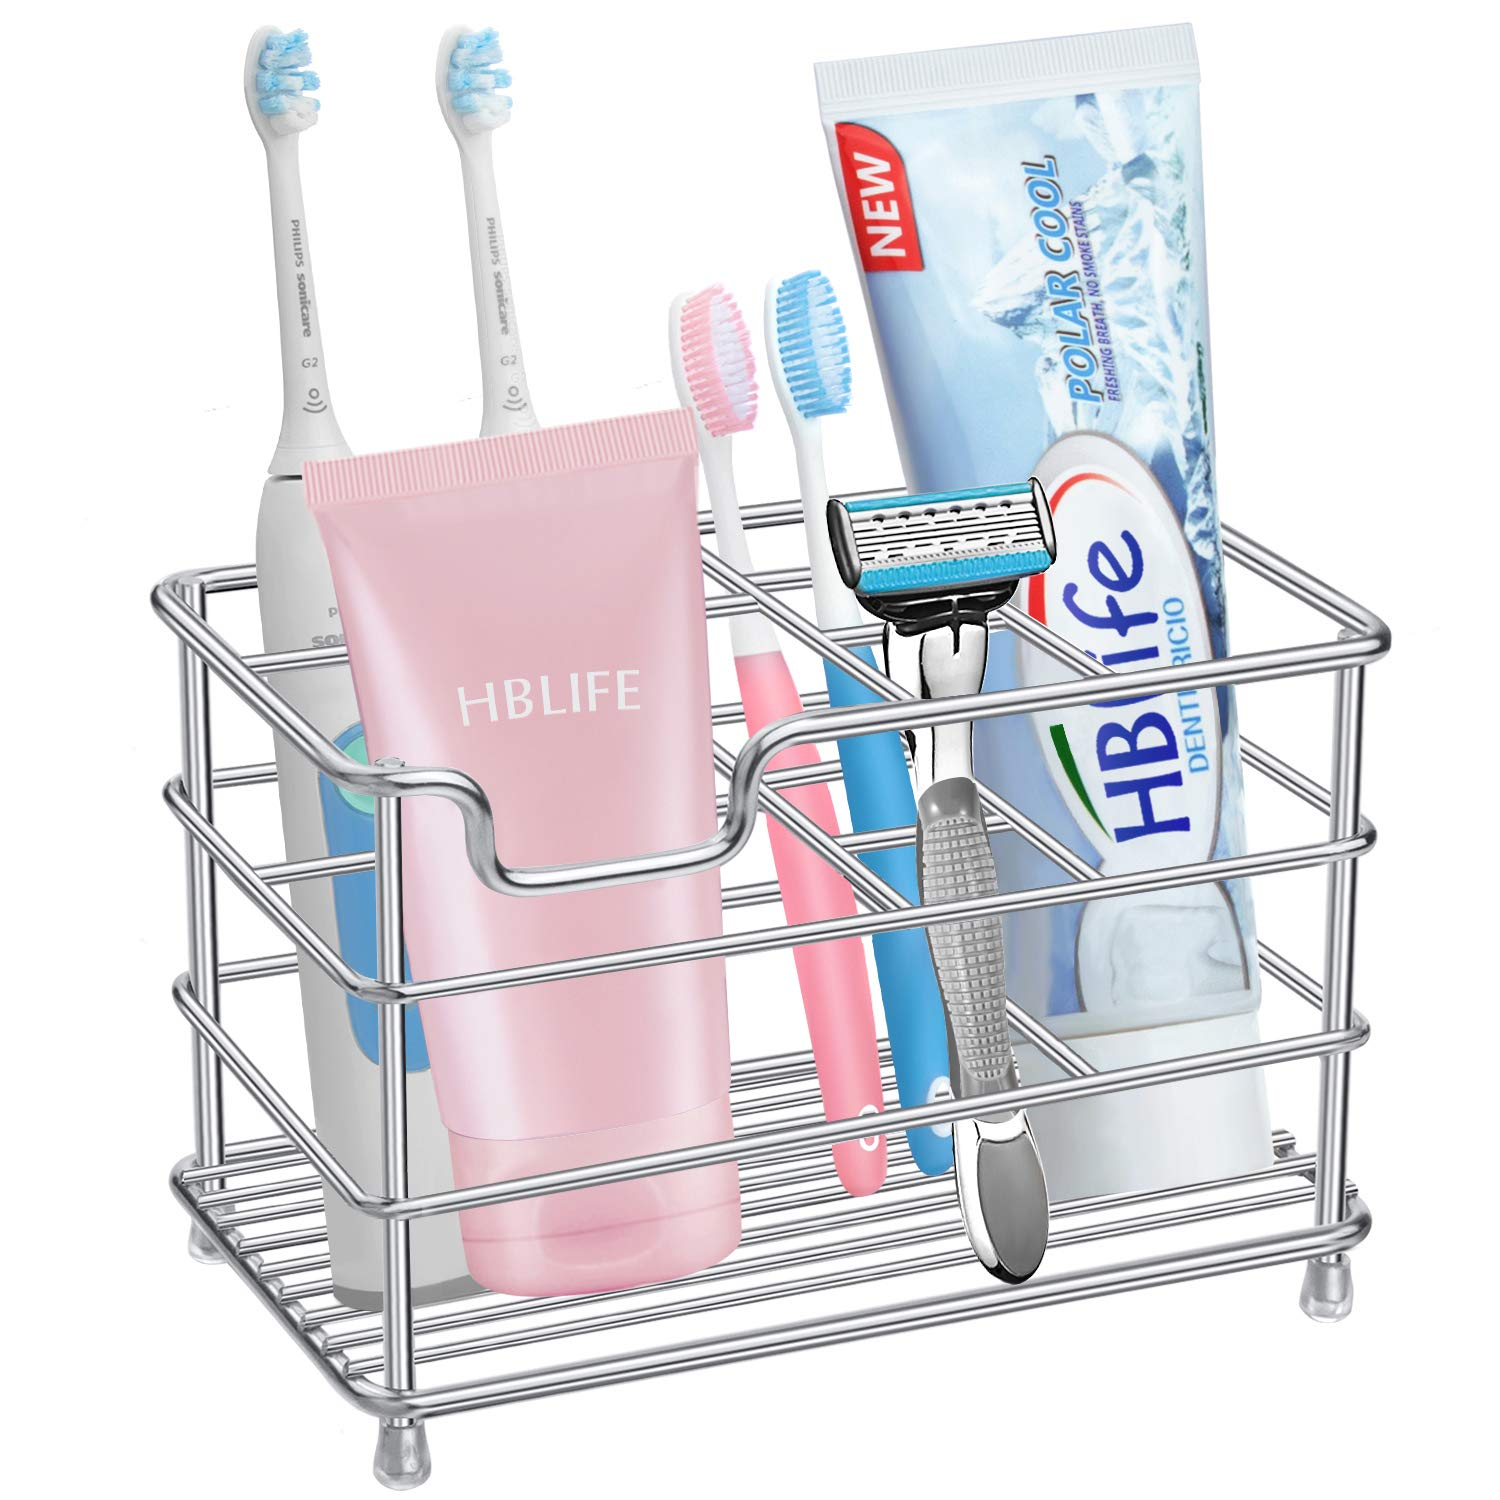 hblife Electric Toothbrush Holder, Large Stainless Steel Toothpaste Holder Bathroom Accessories Organizer, Sliver by hblife